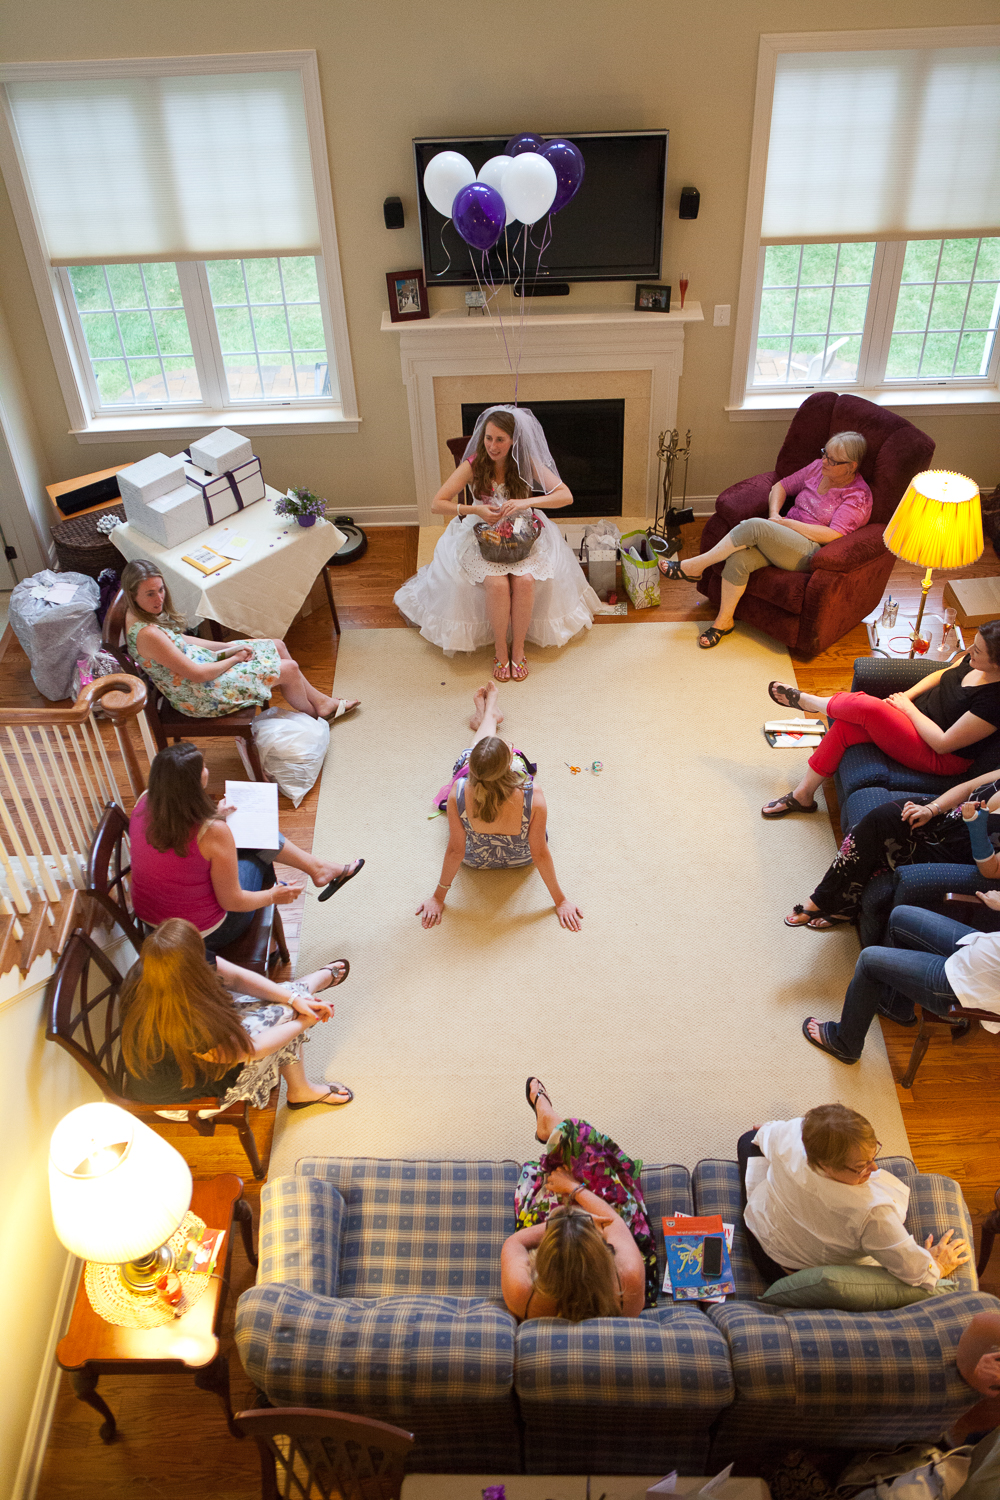 why-hire-a-photographer-for-your-bridal-shower-28.jpg